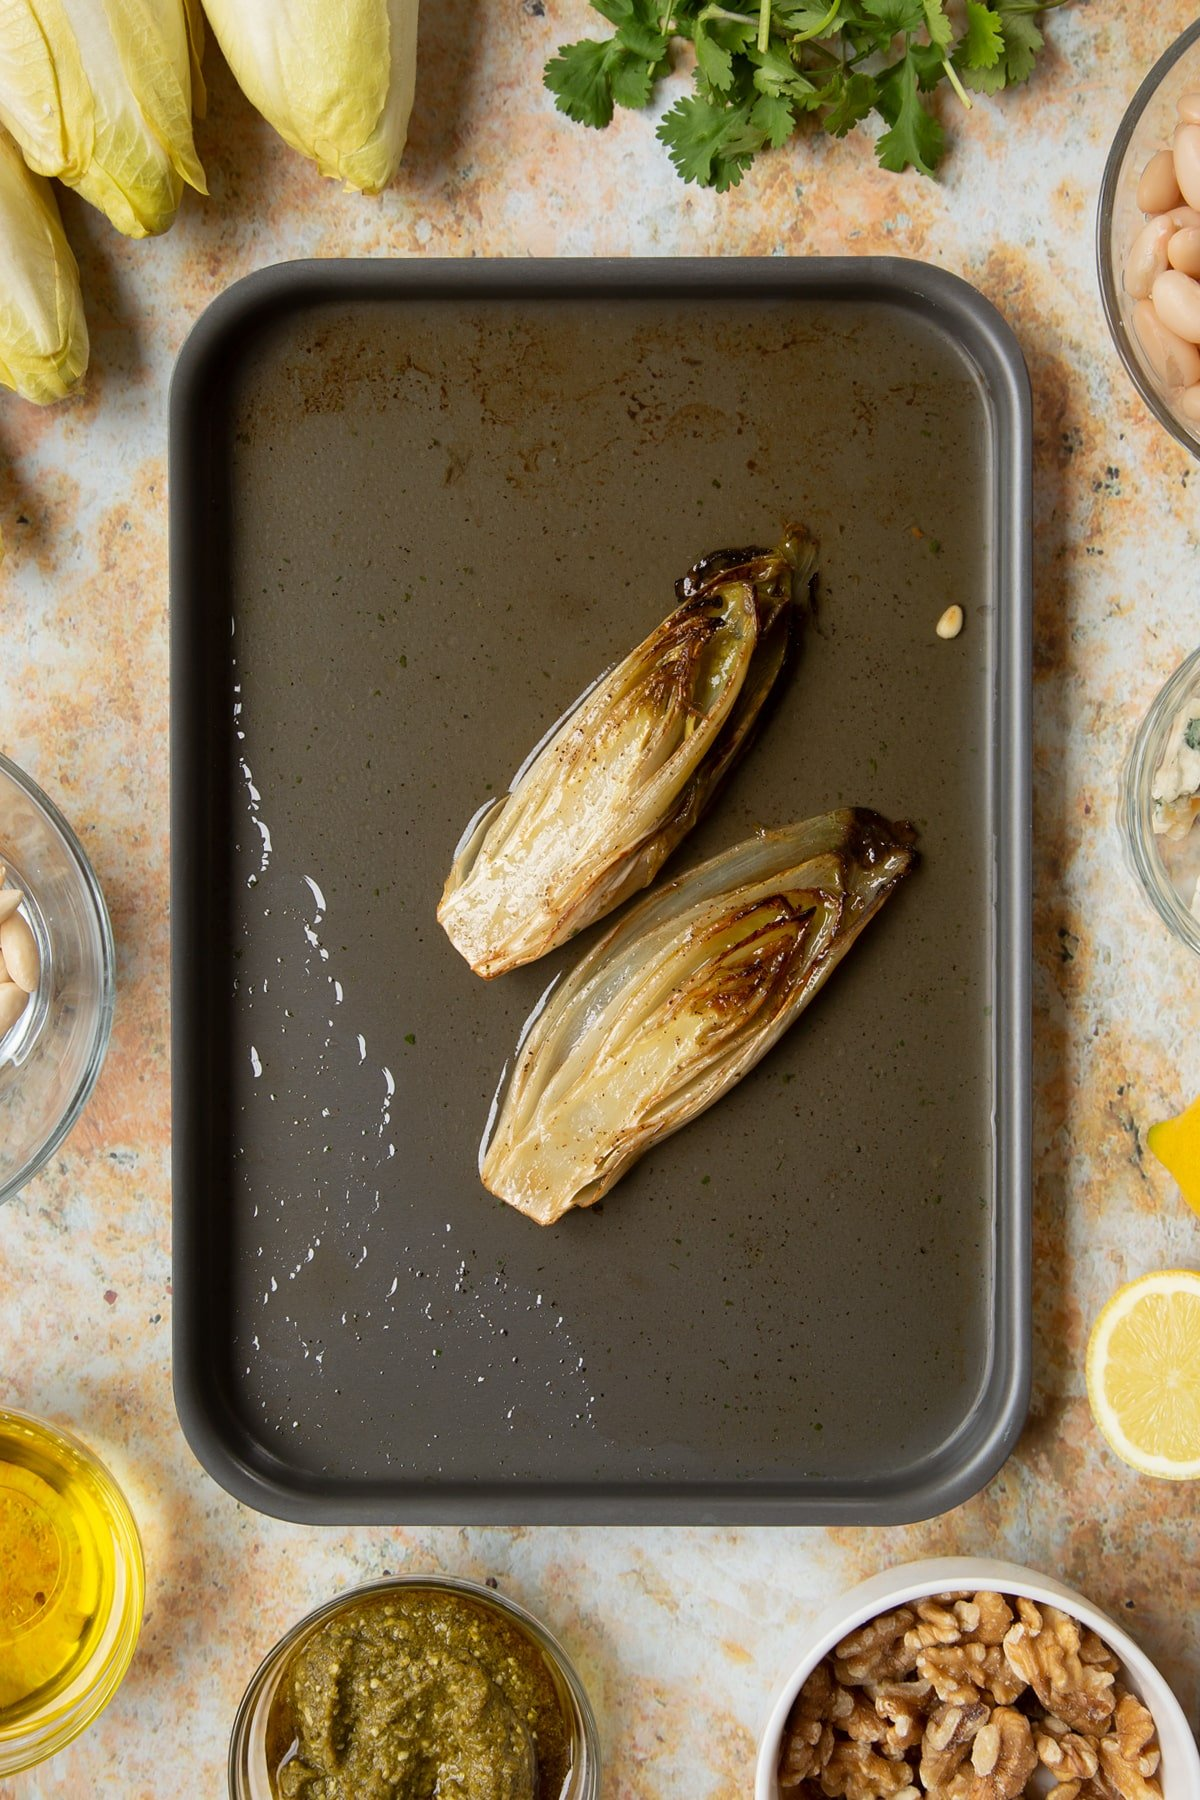 Grill braised chicory in a tray.